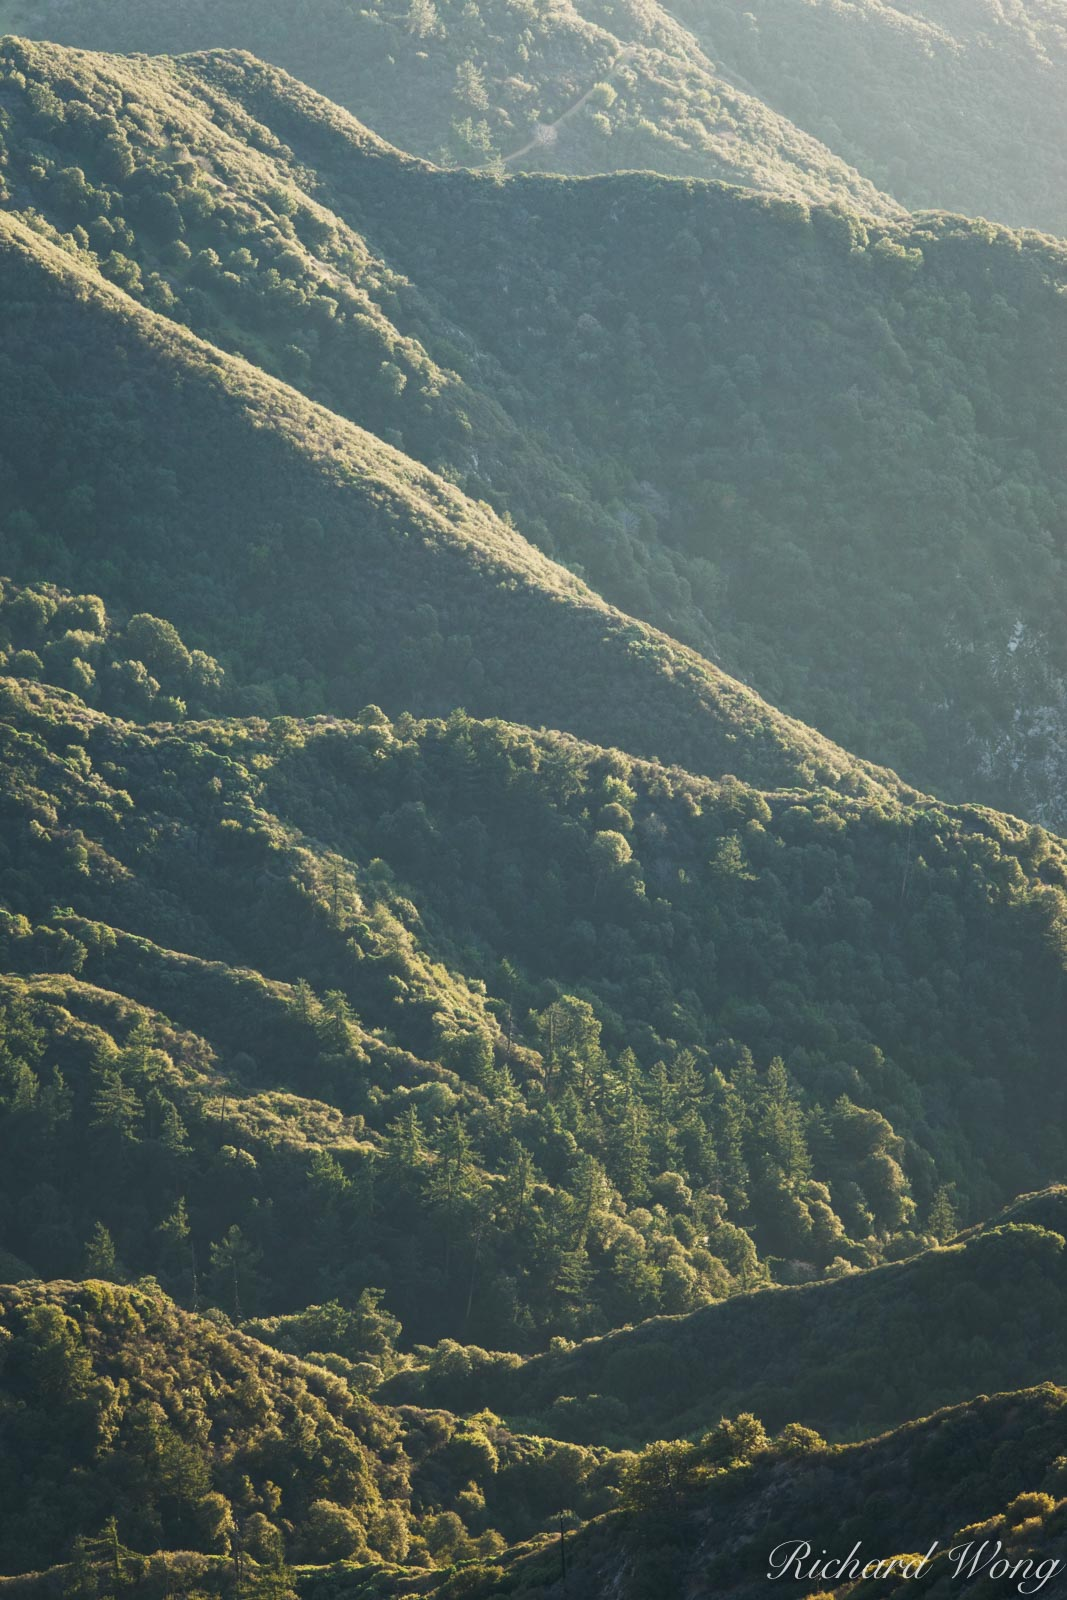 Transpression Ridges in San Gabriel Mountains, Angeles National Forest, California, photo, photo